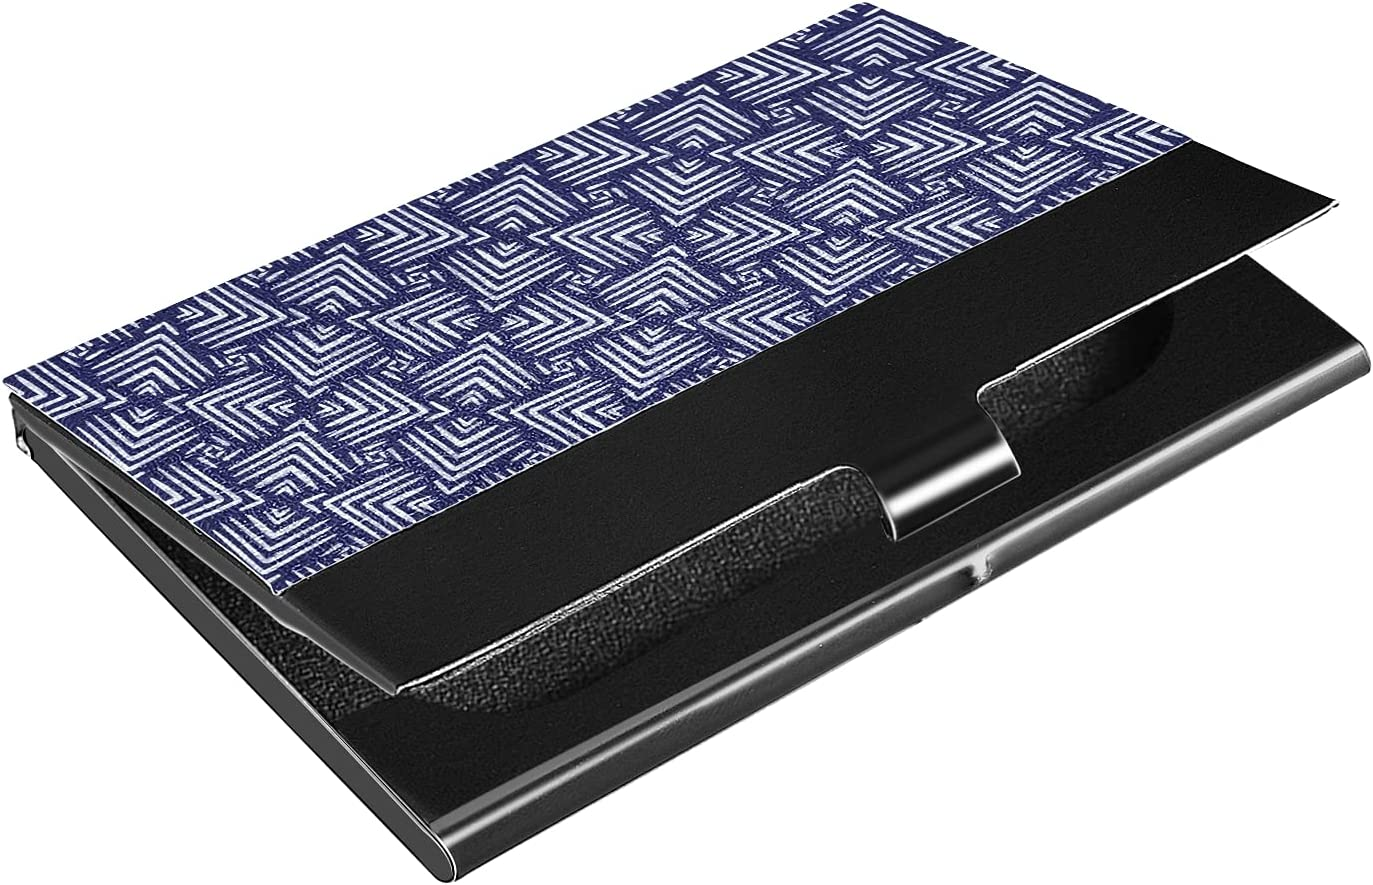 OTVEE Navy Blue Woven Business Card Holder Wallet Stainless Steel & Leather Pocket Business Card Case Organizer Slim Name Card ID Card Holders Credit Card Wallet Carrier Purse for Women Men